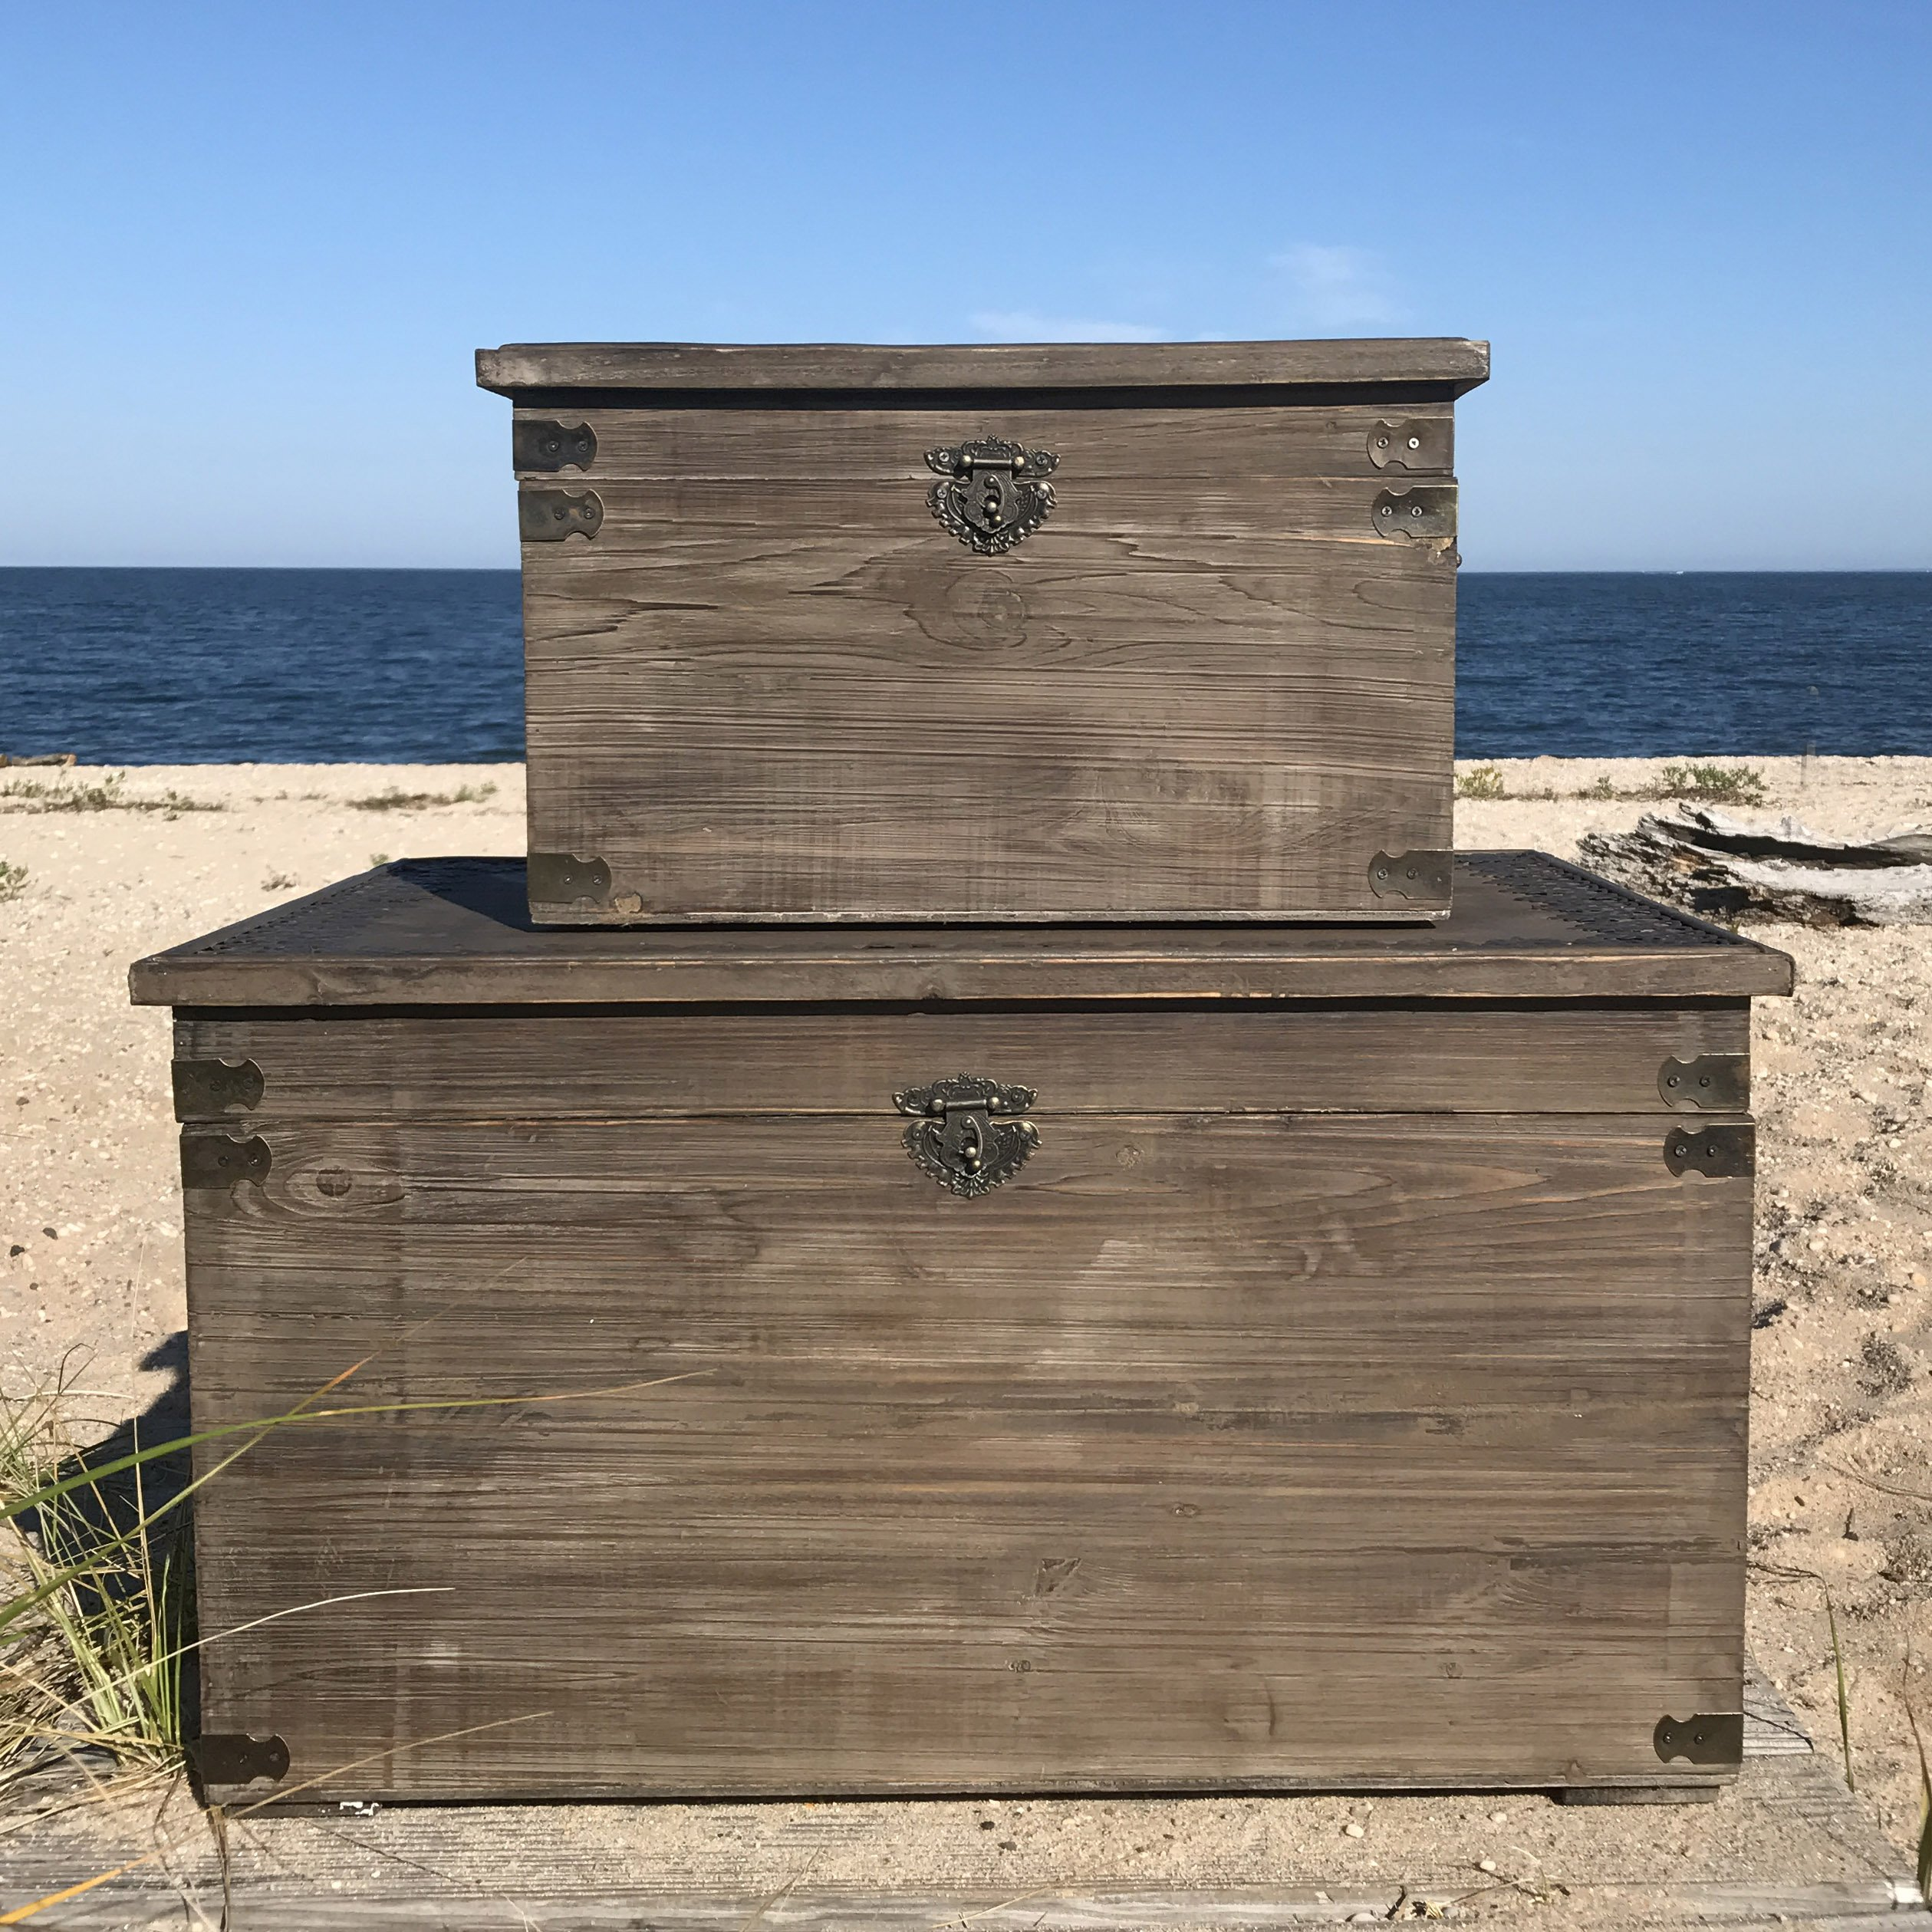 The Urban Zen Mandala Trunks, Treasure Chests, Storage Boxes, Set of 2, Medallion Topped,Tooled Metal Details, Hinged Top, Metal Side Handles, Swing Latch, Various Sizes, By Whole House Worlds